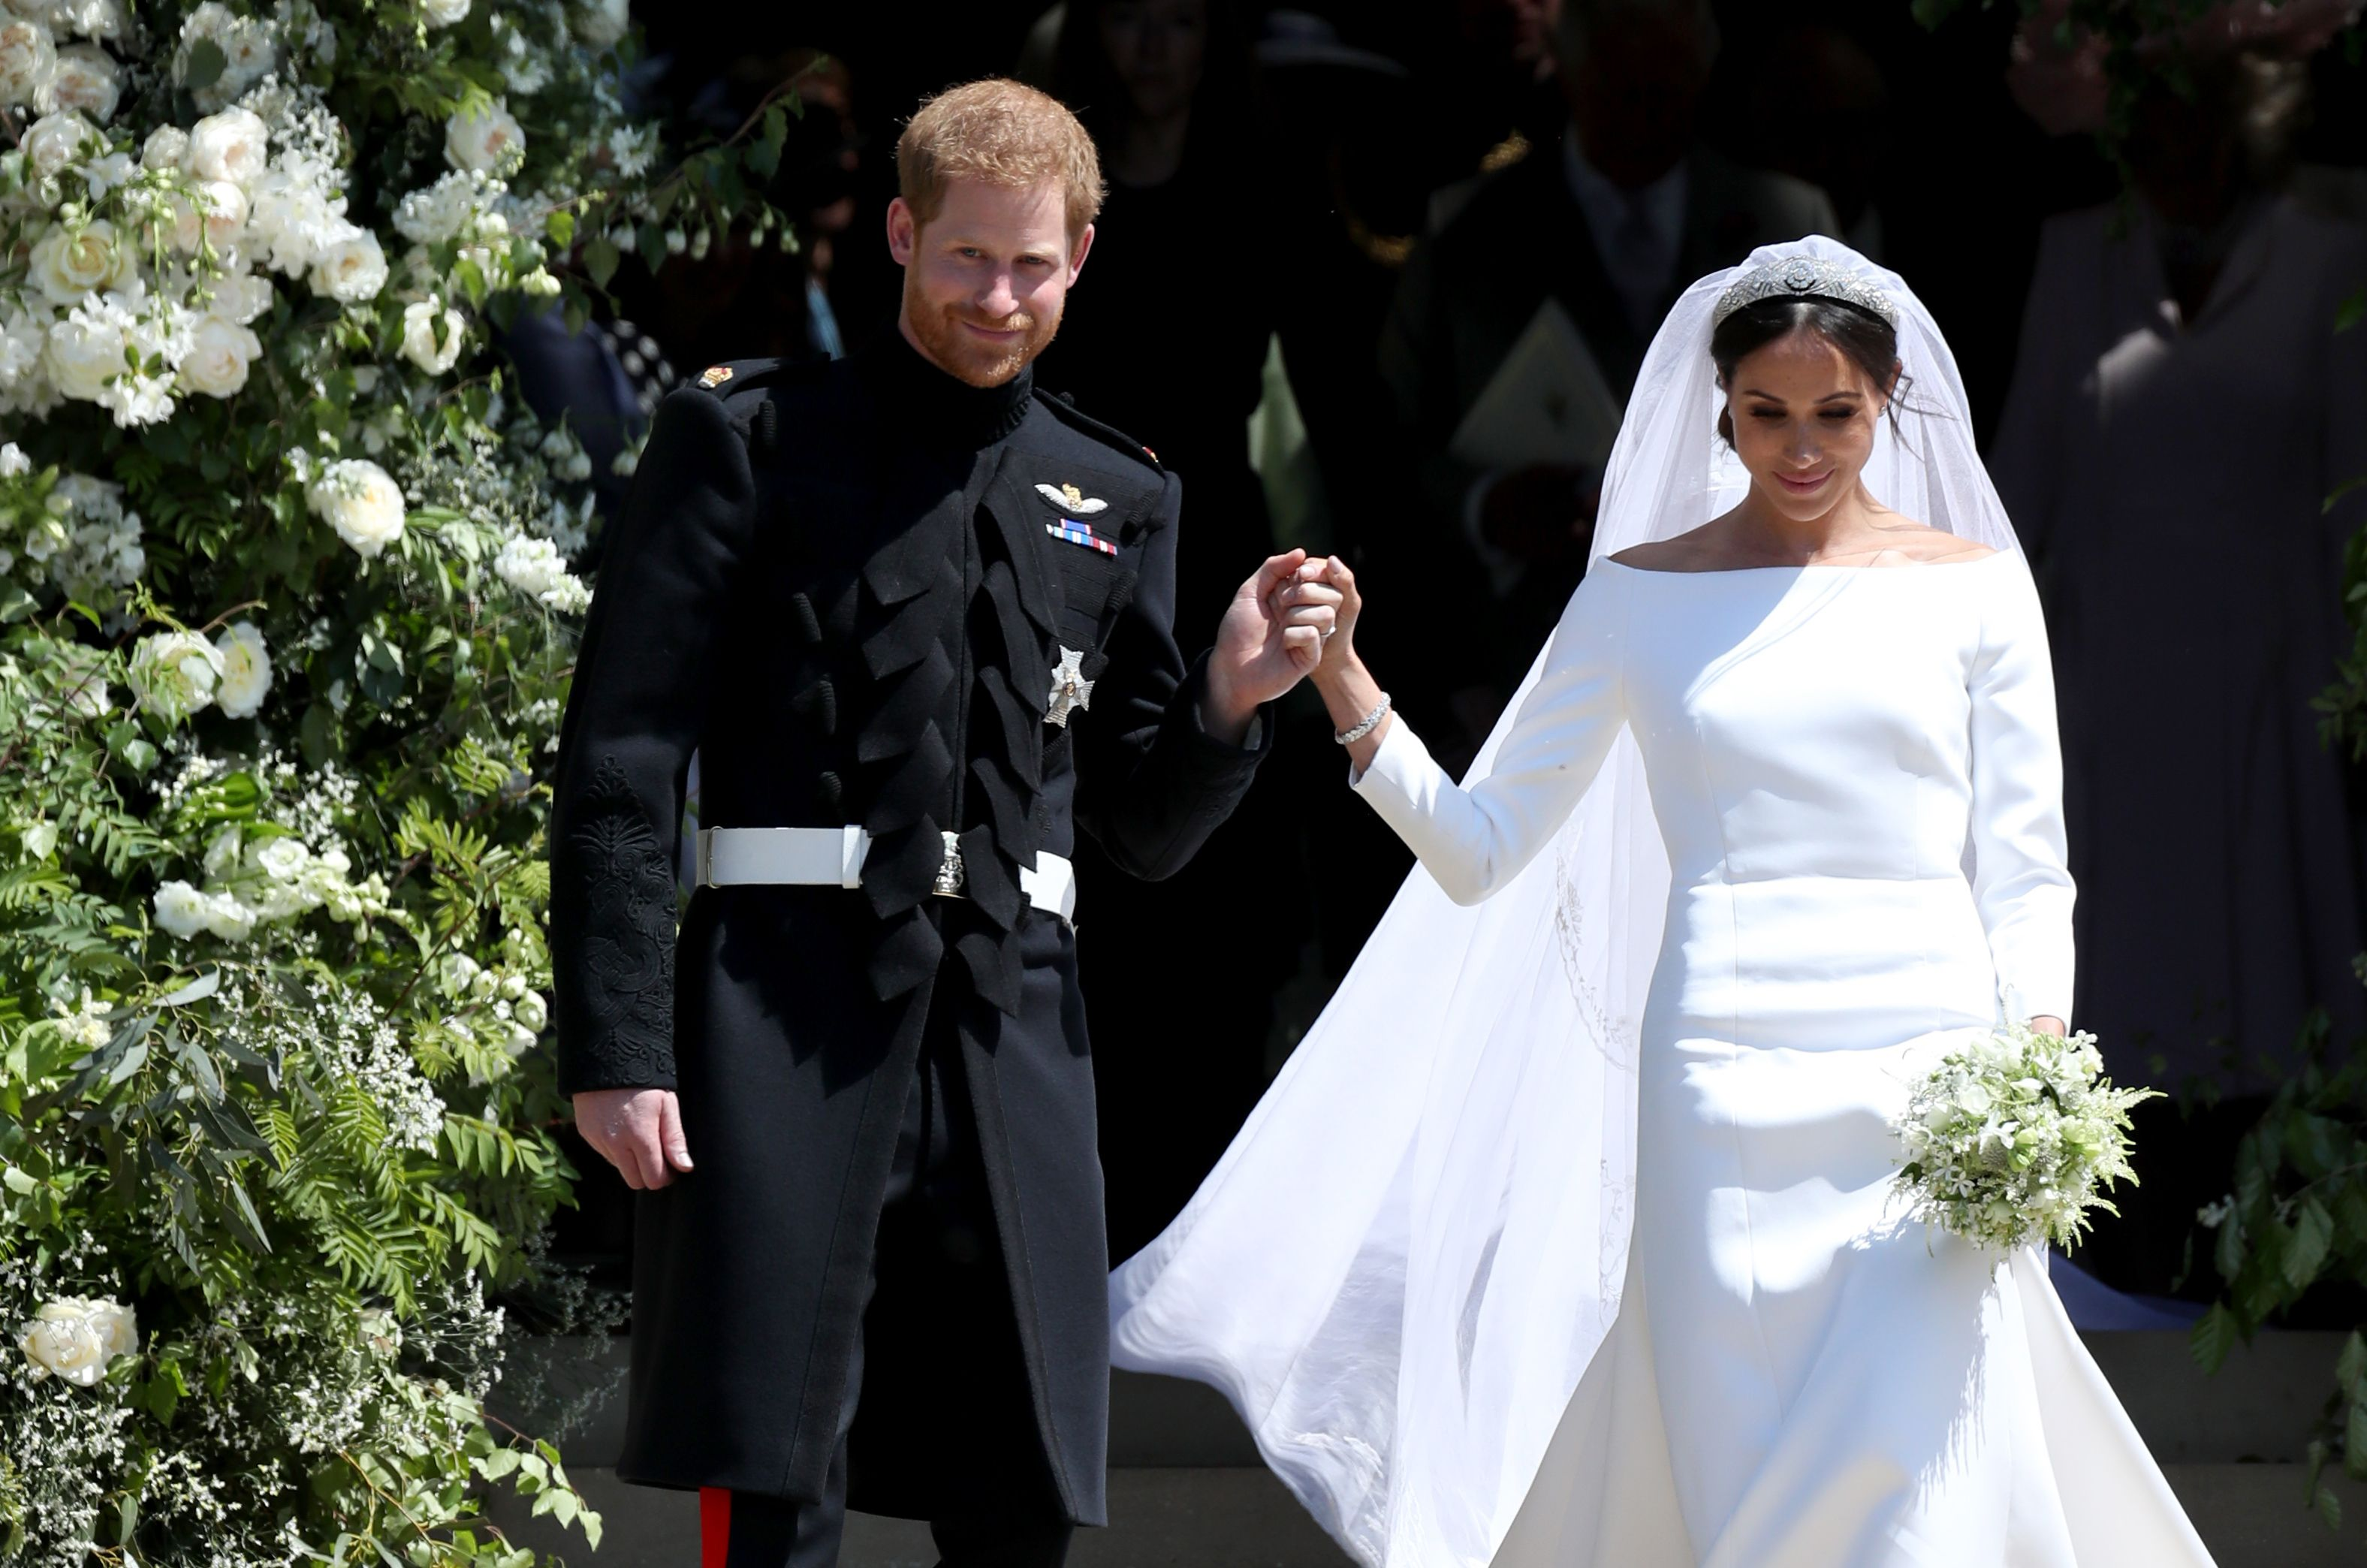 Meghan markles royal wedding flowers were given to a hospice izmirmasajfo